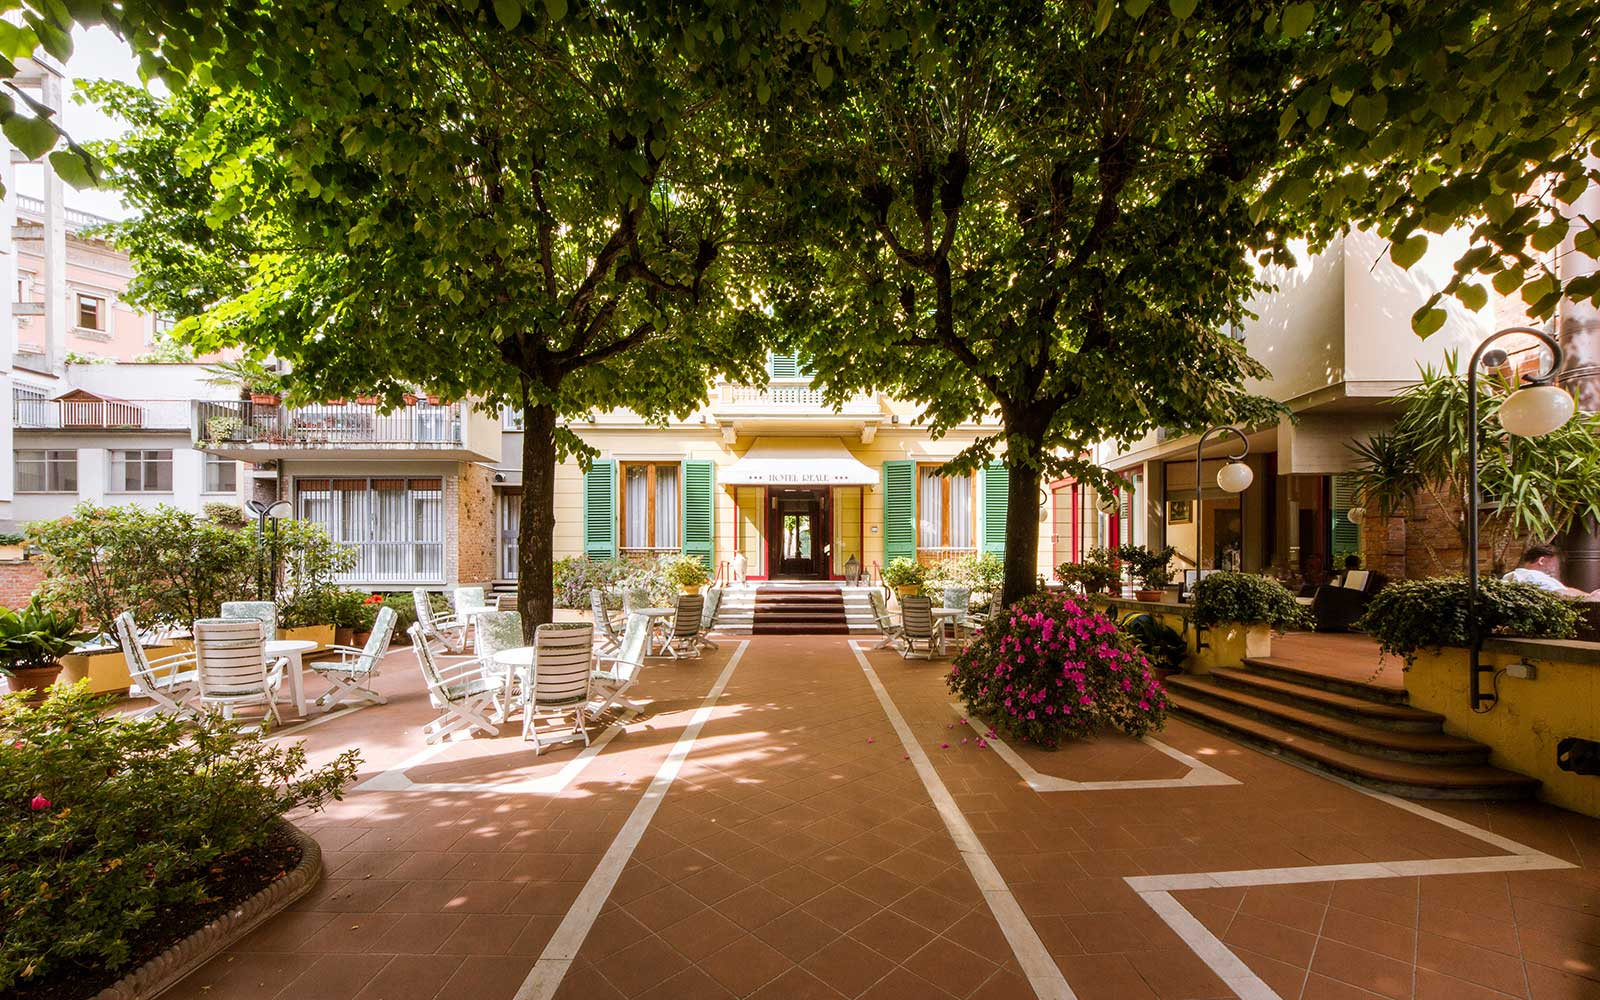 Garden & Swimming Pool - Hospitality - Hotel Reale in Montecatini Terme